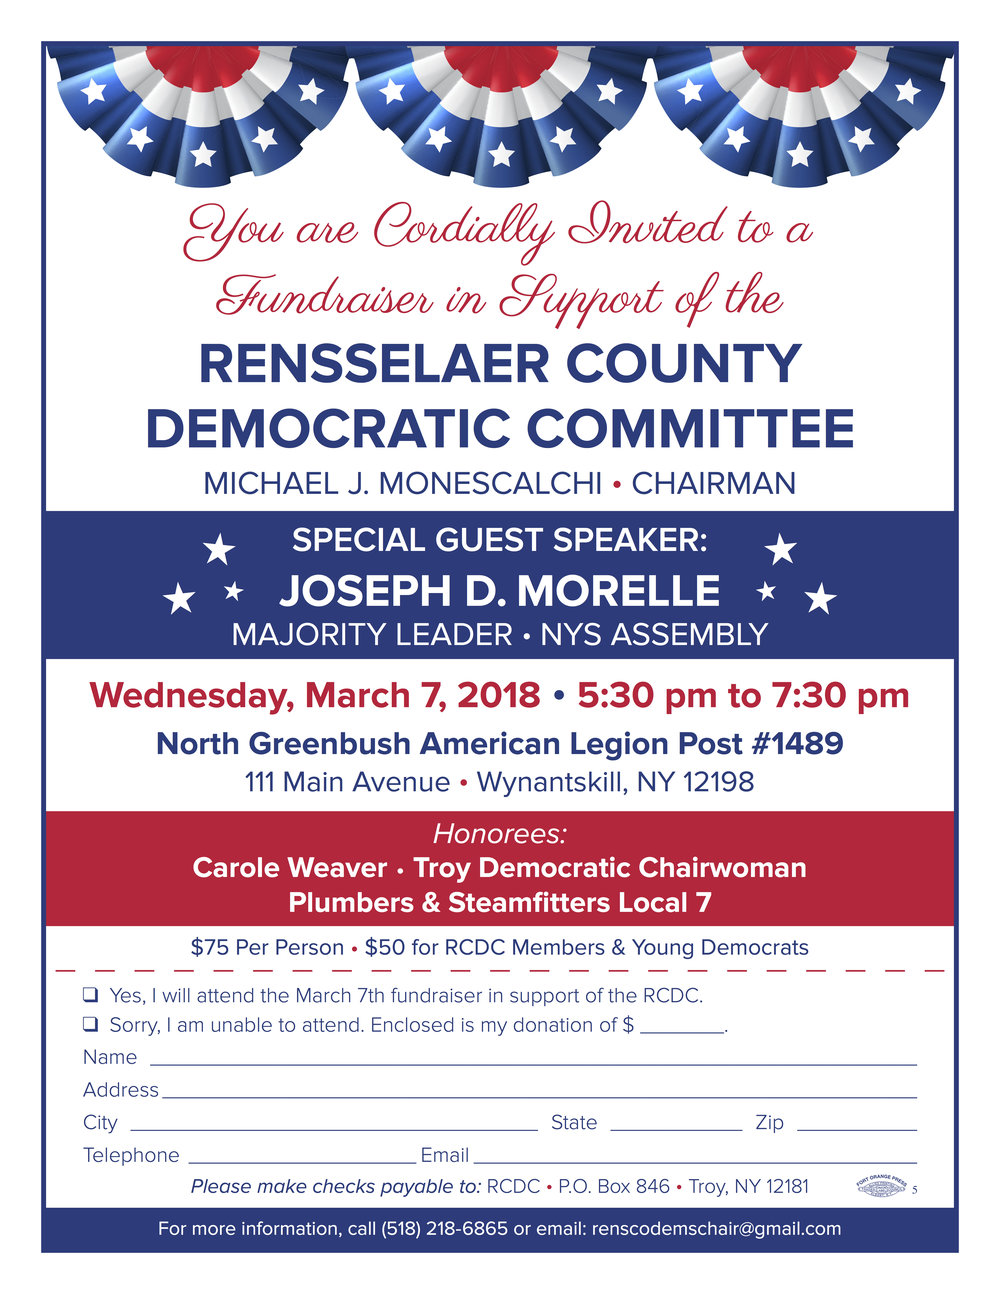 Rensselaer County Democratic Committee Fundraiser Invite - March 7 2018.jpg